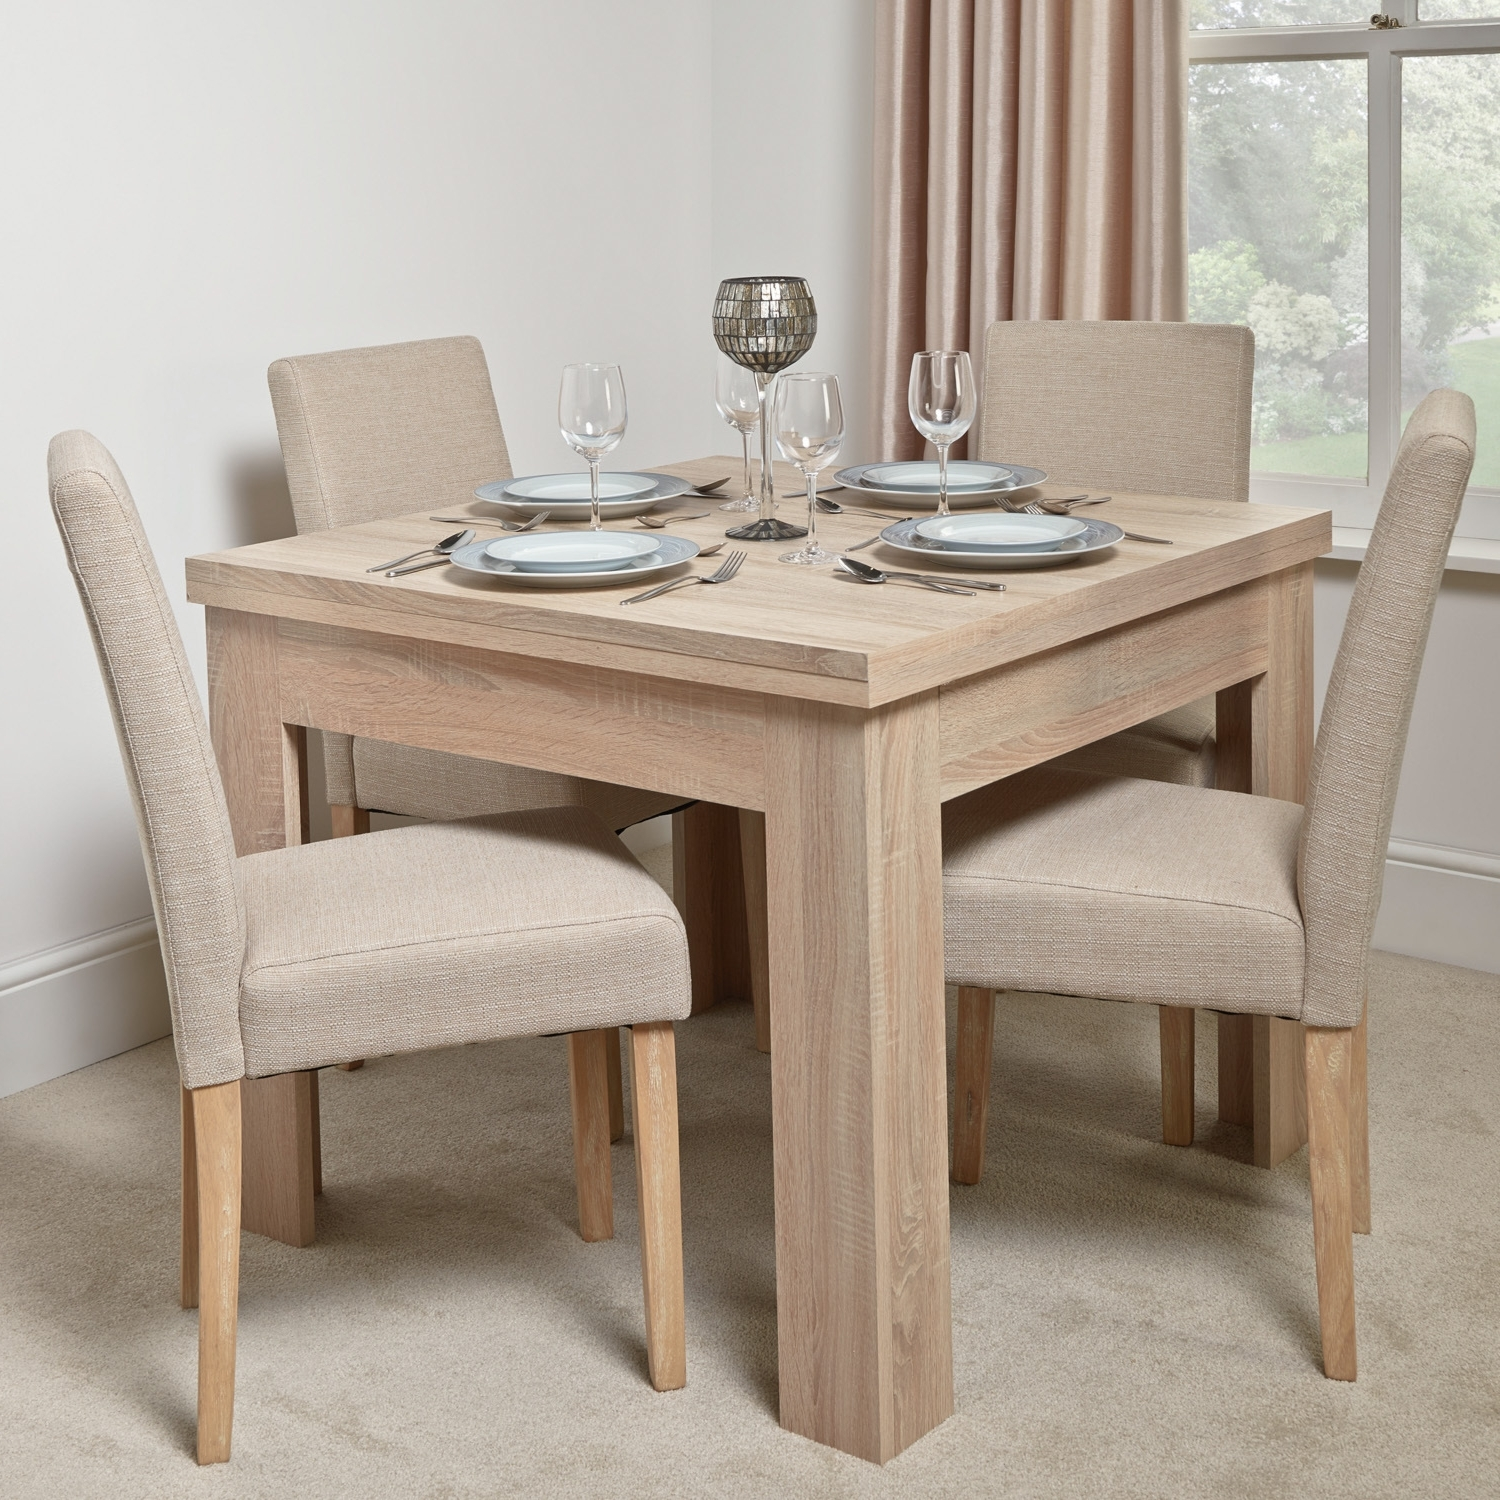 Extending Dining Tables Sets for Well known Calpe Flip Extending Dining Table